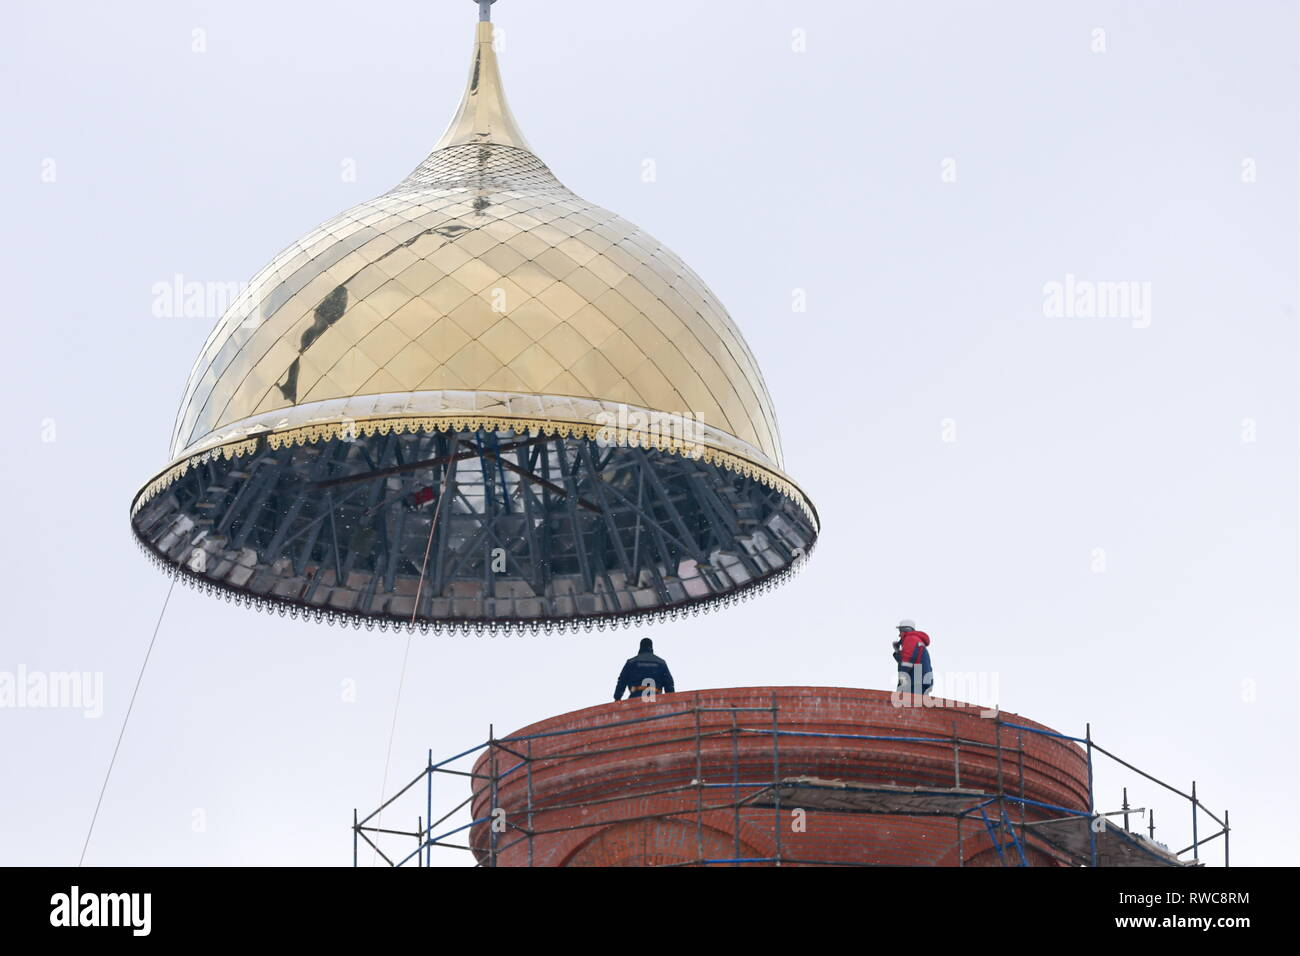 Russia. 06th Mar, 2019. MOSCOW REGION, RUSSIA - MARCH 6, 2019: Installing a cupola of St Vladimir Cathedral, the main cathedral of the National Guard of Russia, in Balashikha. Vladimir Gerdo/TASS Credit: ITAR-TASS News Agency/Alamy Live News - Stock Image